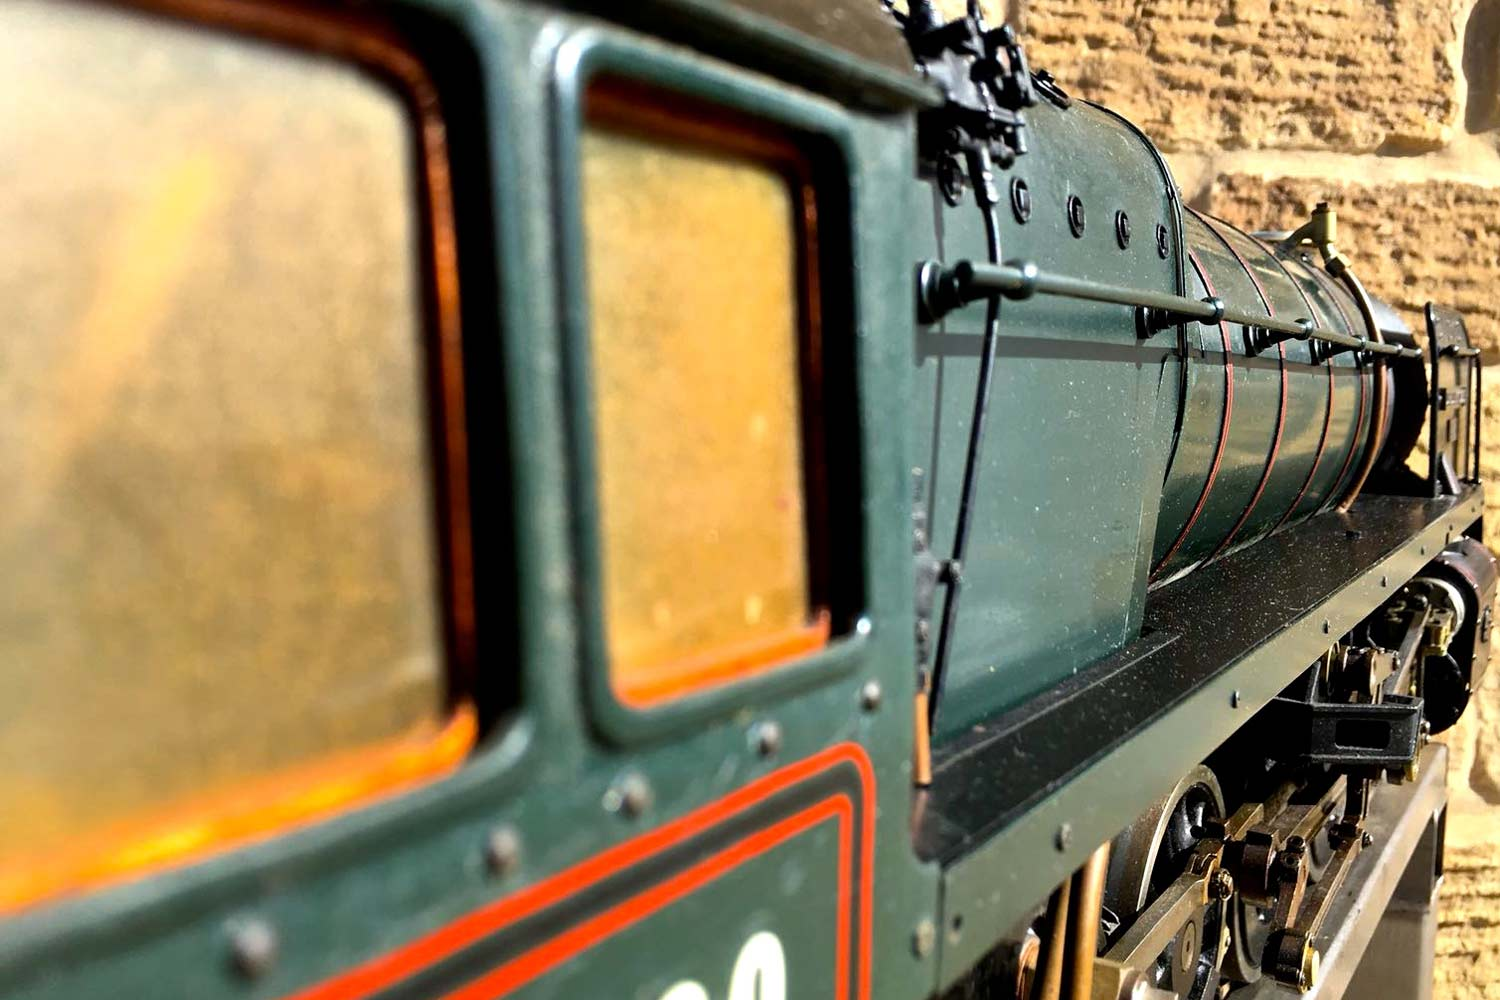 test 3-and-a-half-inch-BR-9F-OS-live-steam-locomotive-for-sale-22